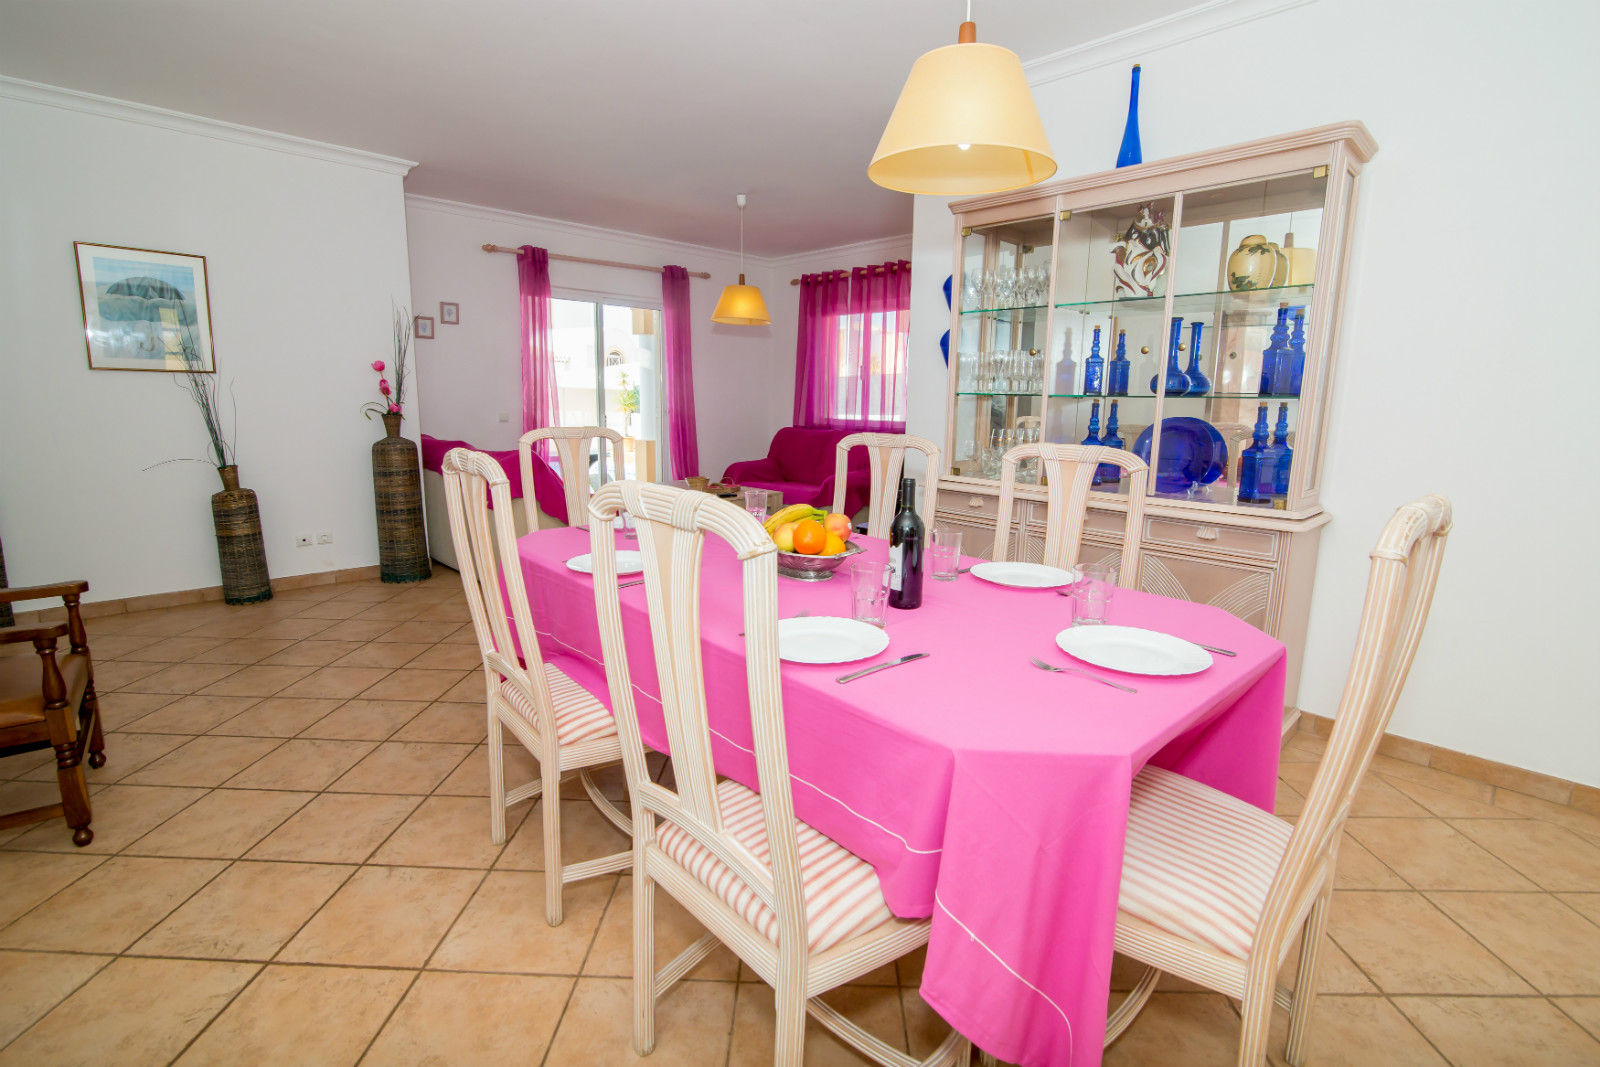 All round, light & bright villa, with nice furniture, all with great surrounds.